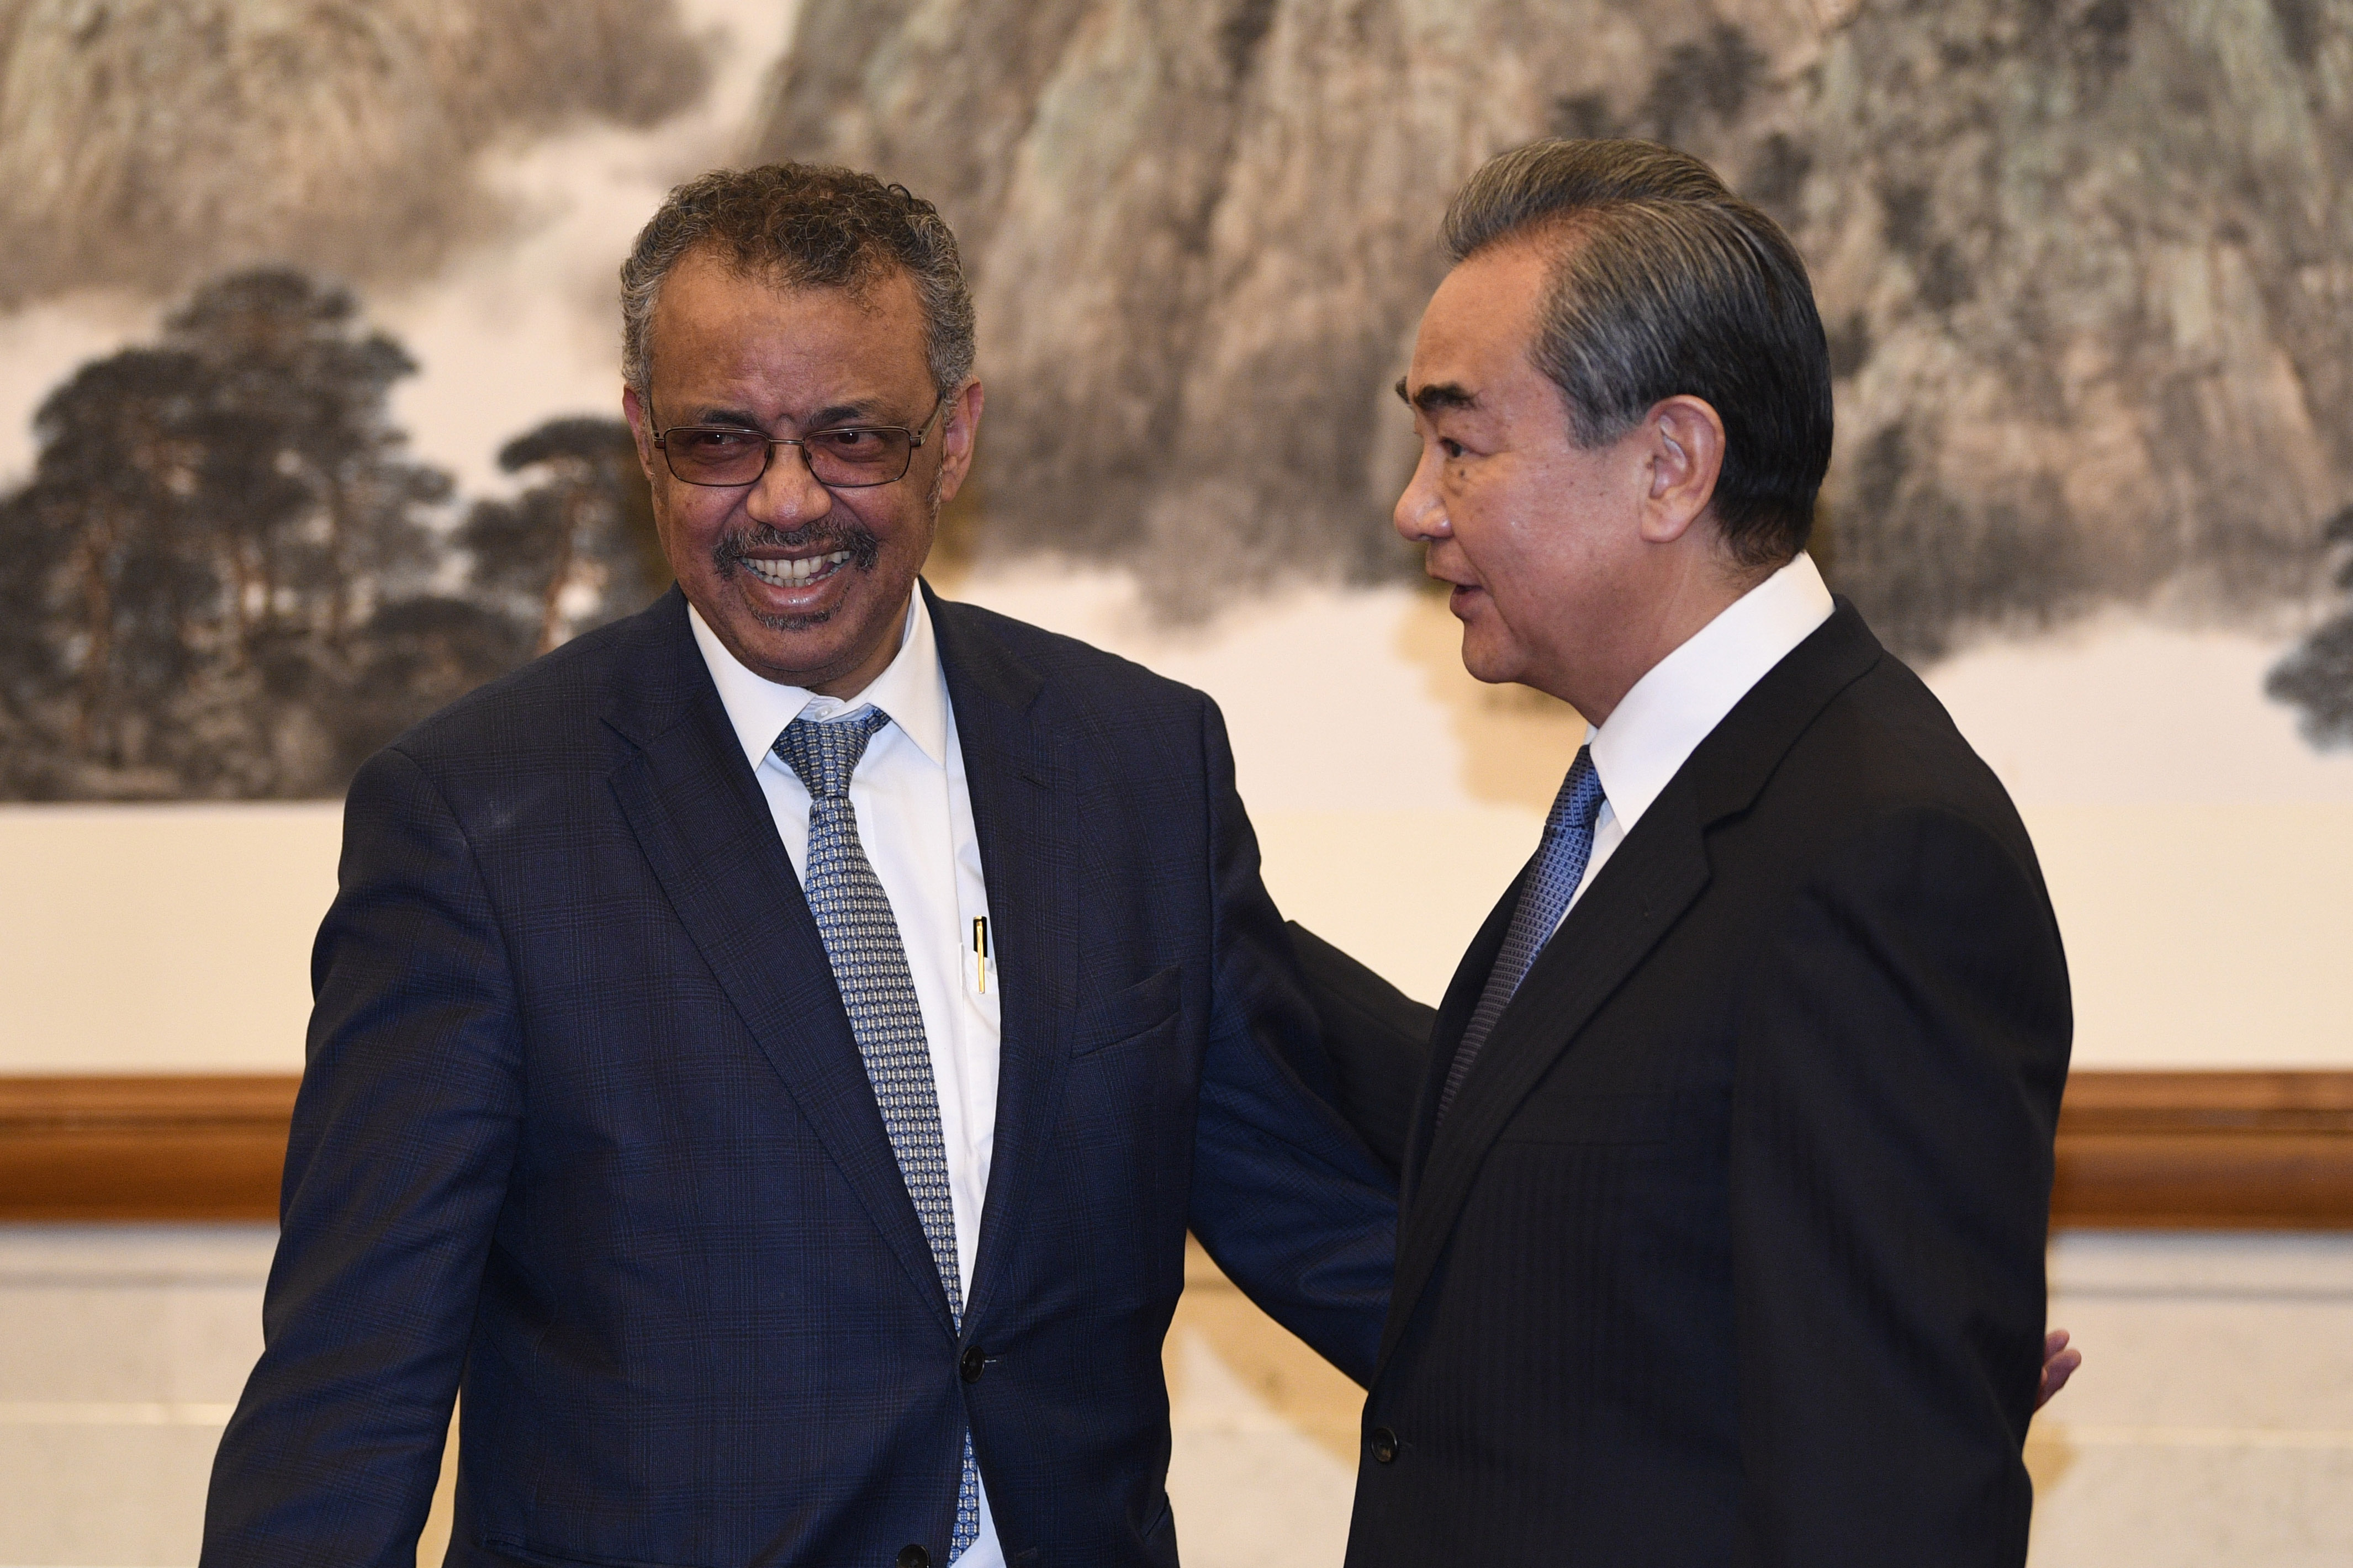 Photo: Tedros Adhanom, Director General of the World Health Organization, meets with with Chinese State Councilor and Foreign Minister Wang Yi at the Diaoyutai State Guesthouse on January 28, 2020 in Beijing, China. (Naohiko Hatta - Pool/Getty Images)